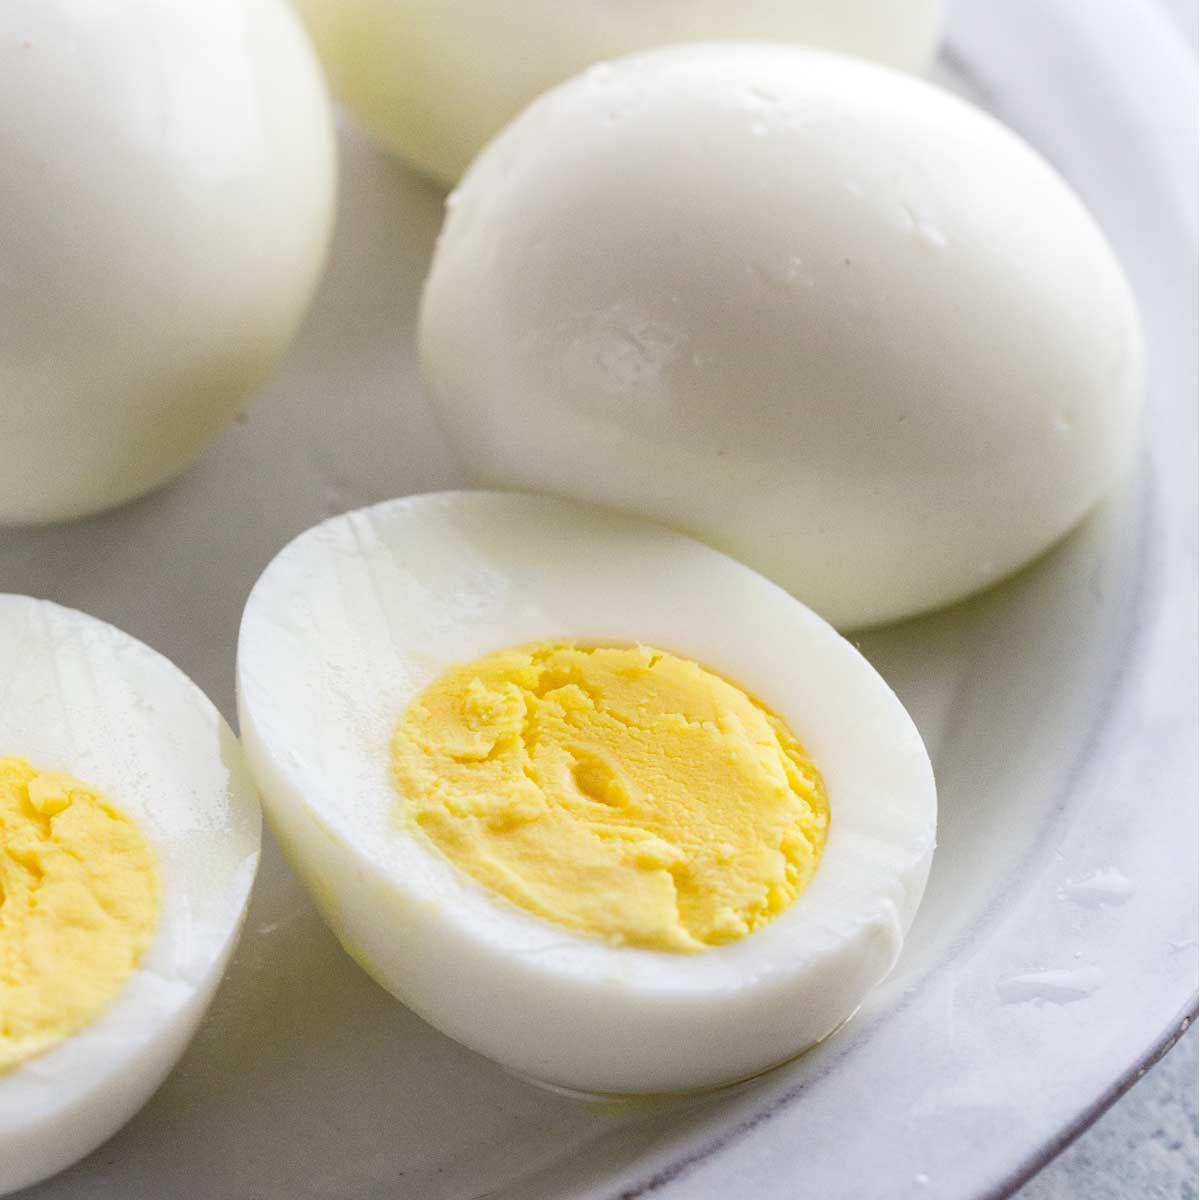 Boiled Egg It A Great Source Of Digestible Protein Riboflavin And Selenium For Some Dogs That Are Prone To Digestive In 2020 Egg Masala Boiled Eggs Boiled Egg Diet